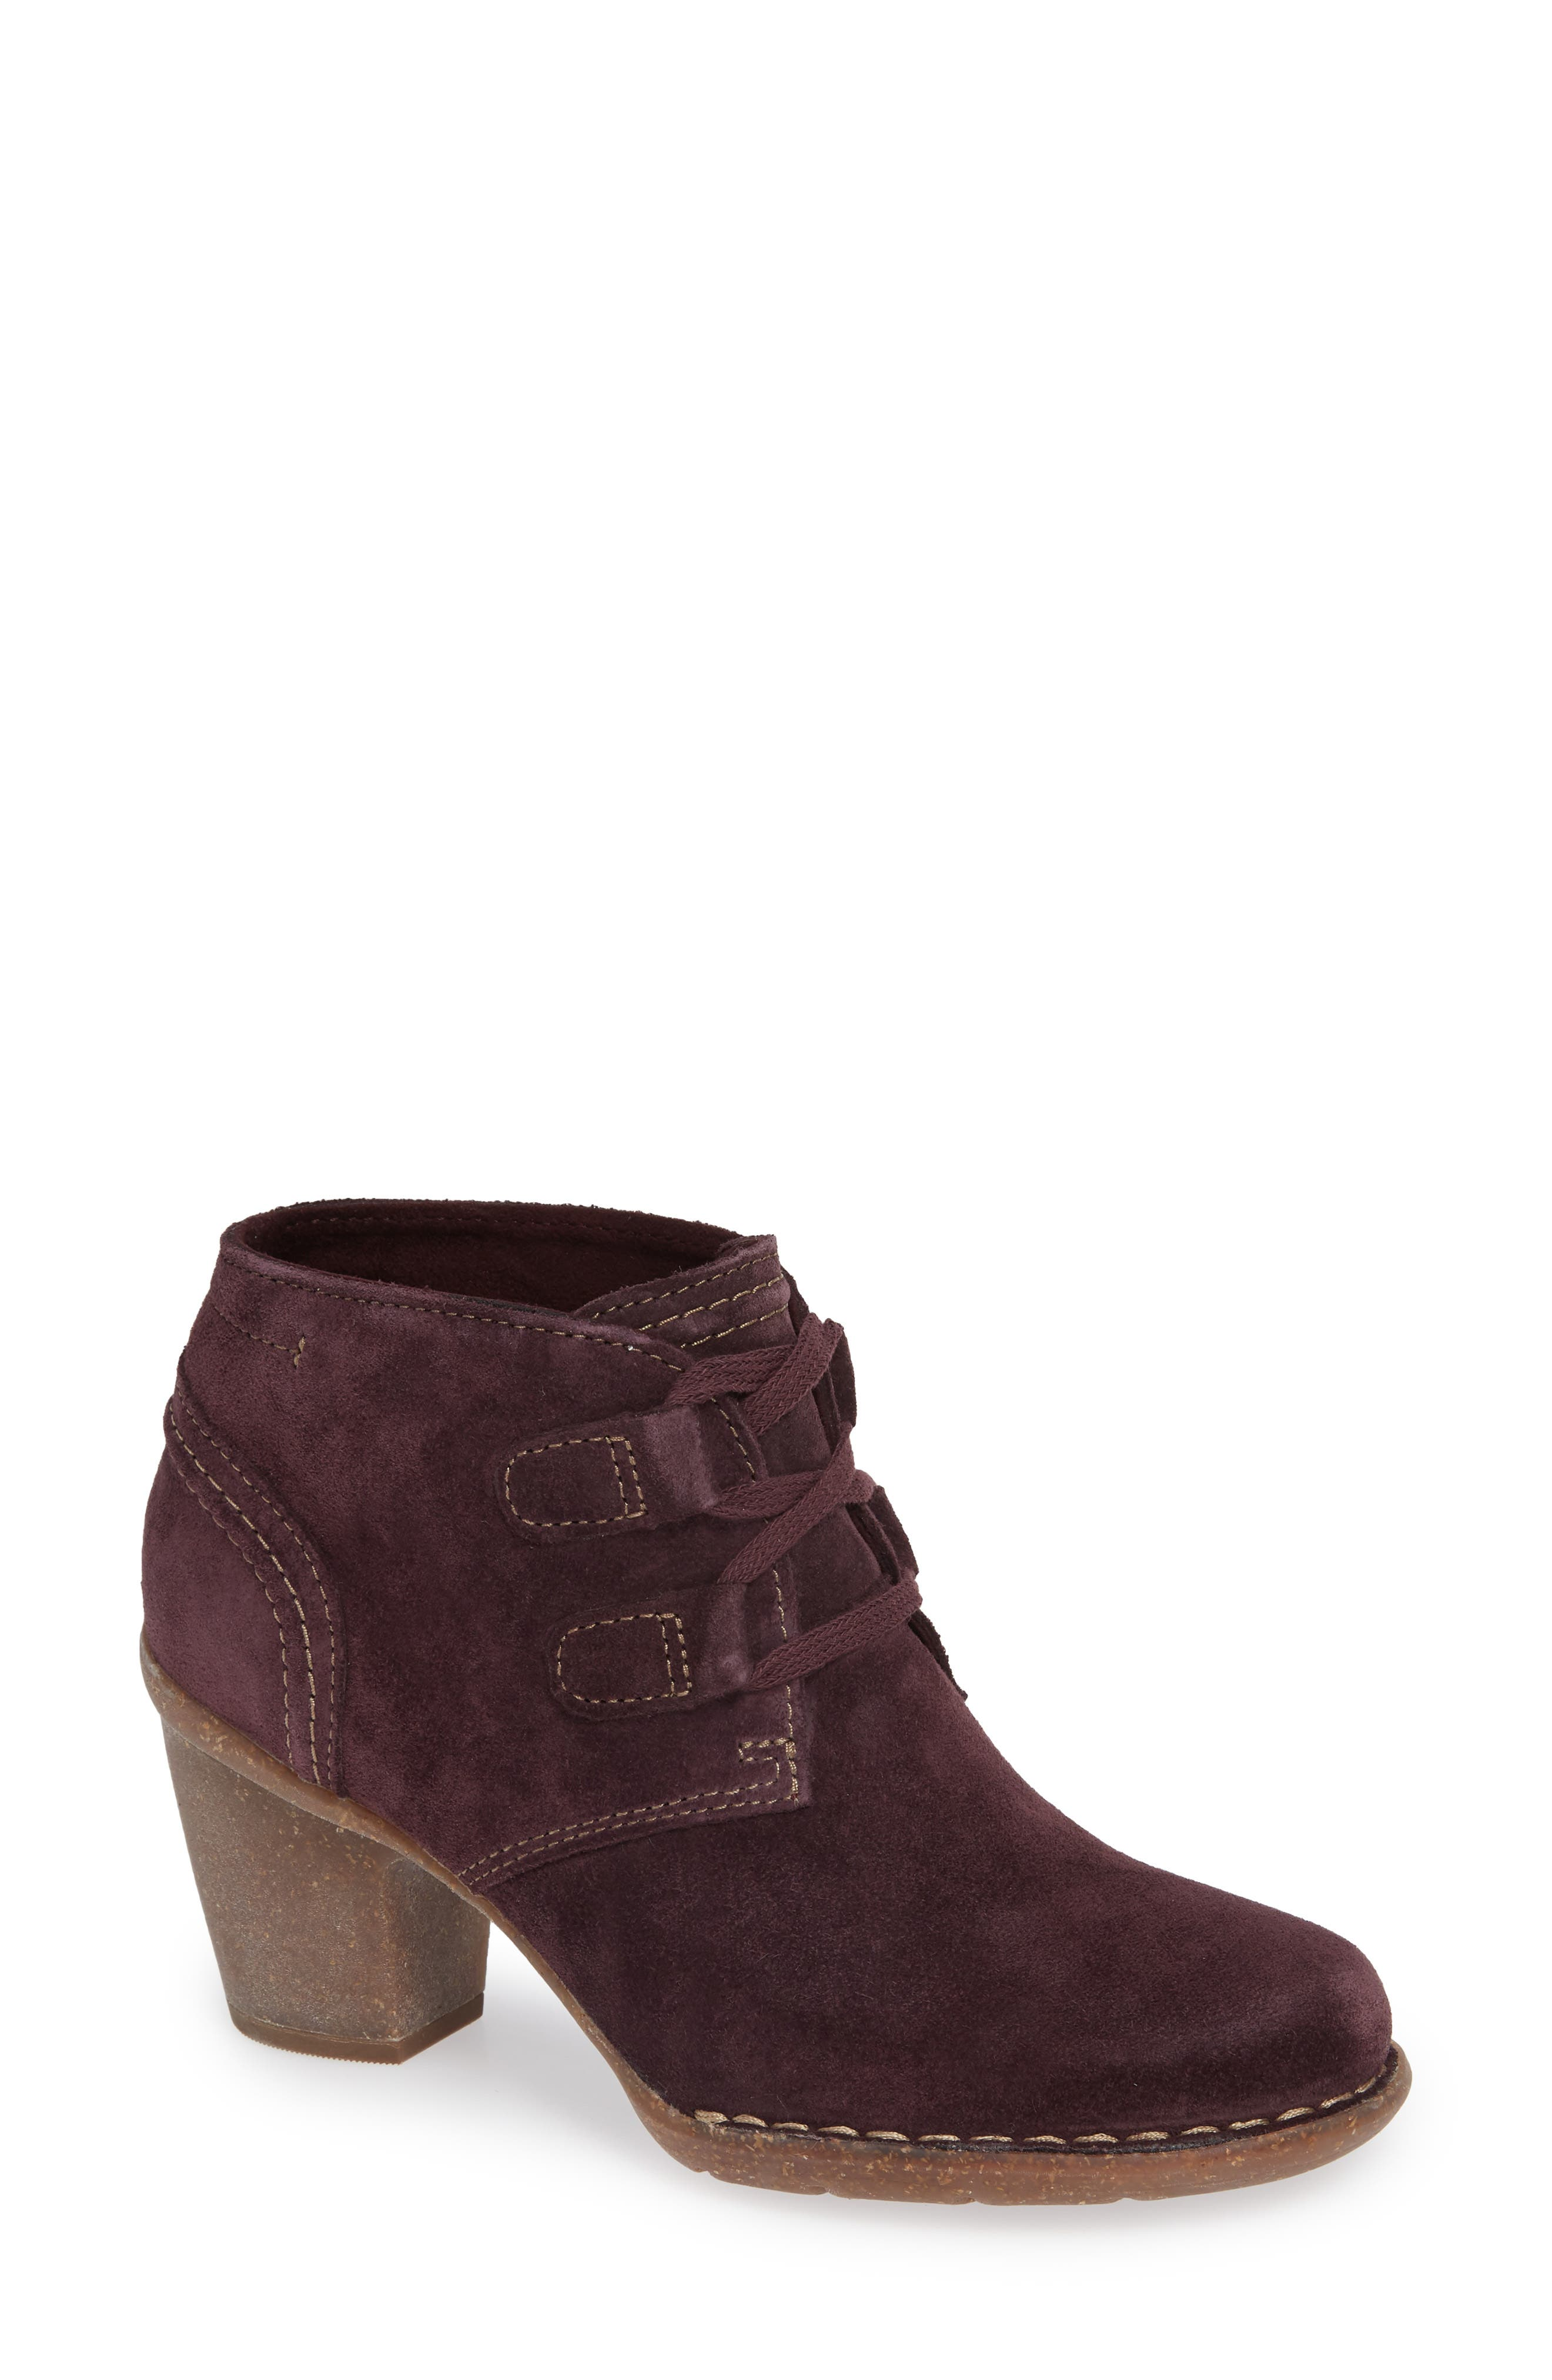 CLARKS<SUP>®</SUP> Carleta Lyon Ankle Boot, Main, color, AUBERGINE SUEDE